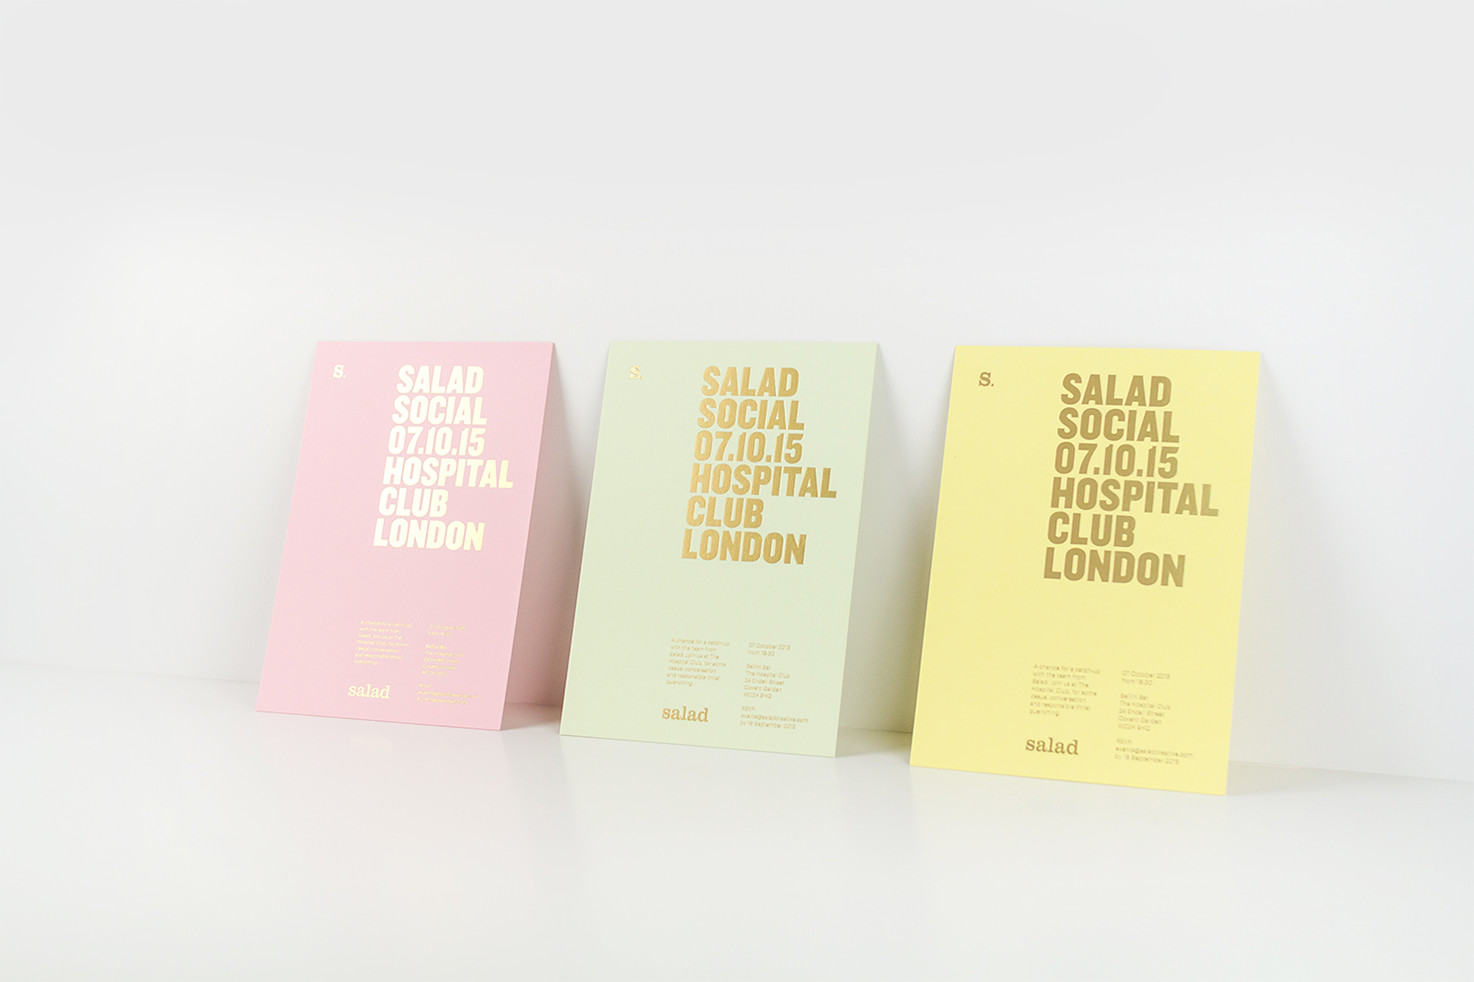 Salad business cards